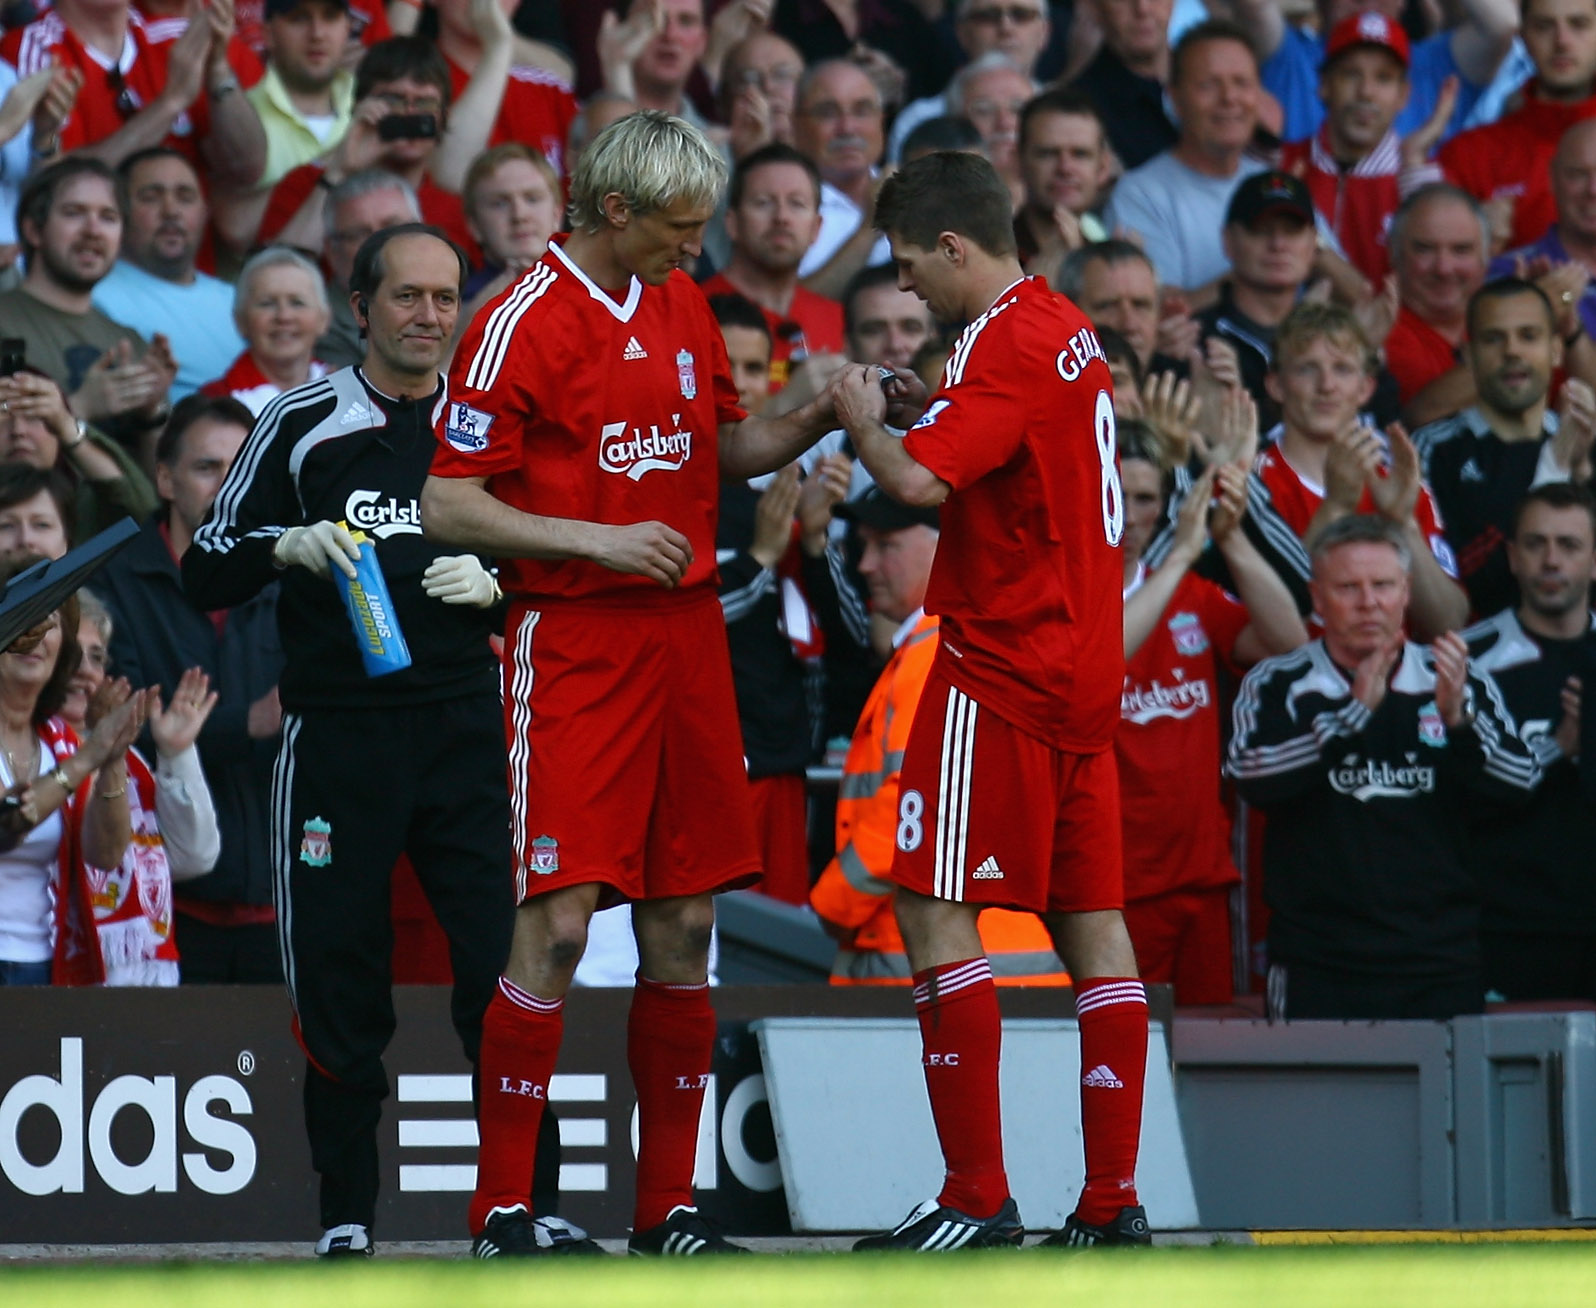 Sami Hyppia and Steven Gerrard